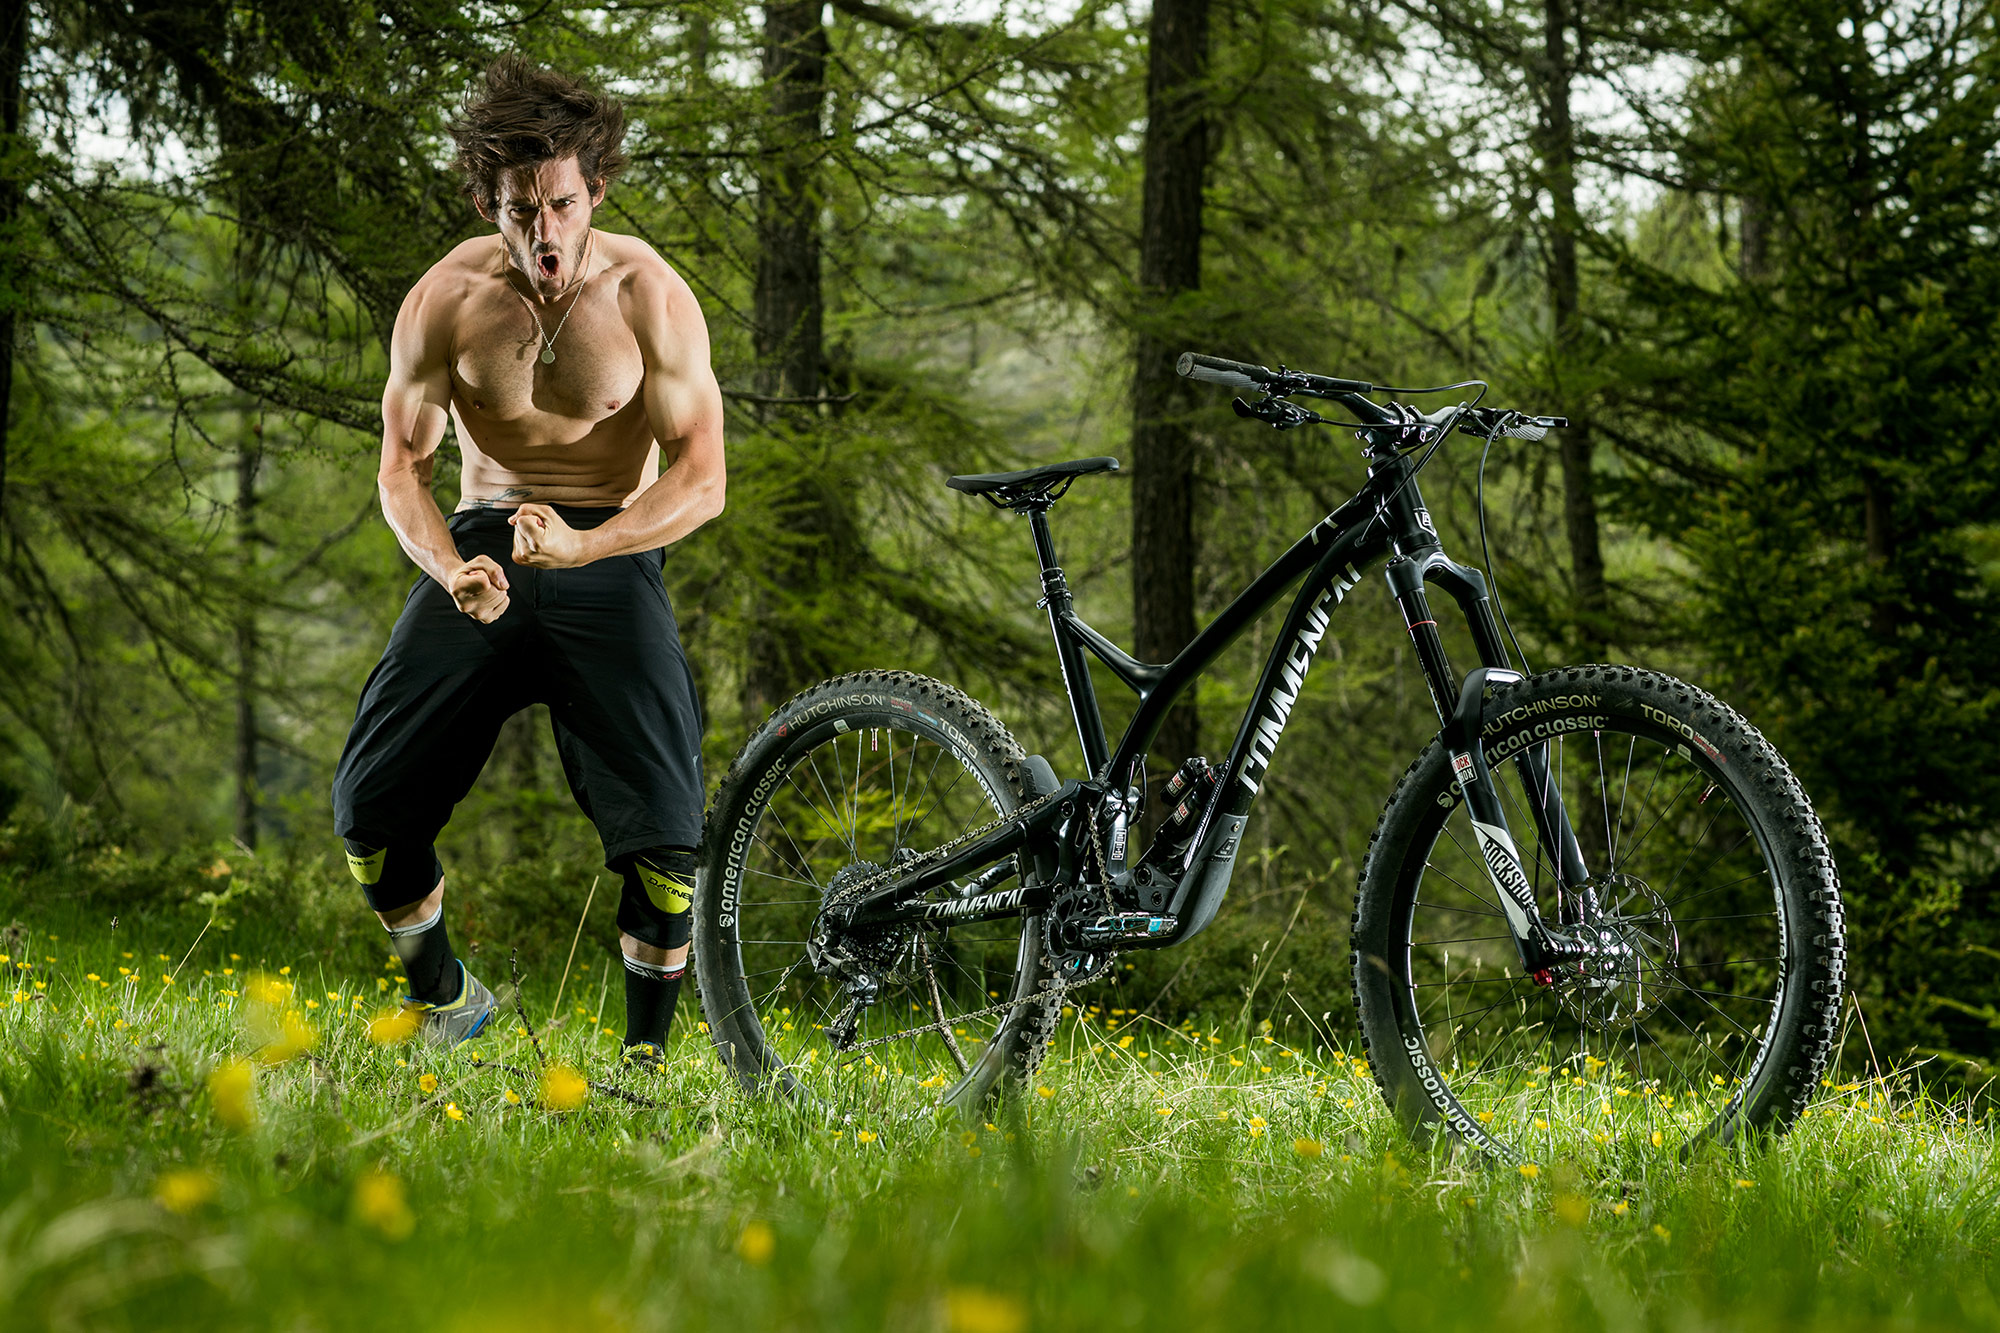 New Commencal Supreme SX - Yoann Barelli